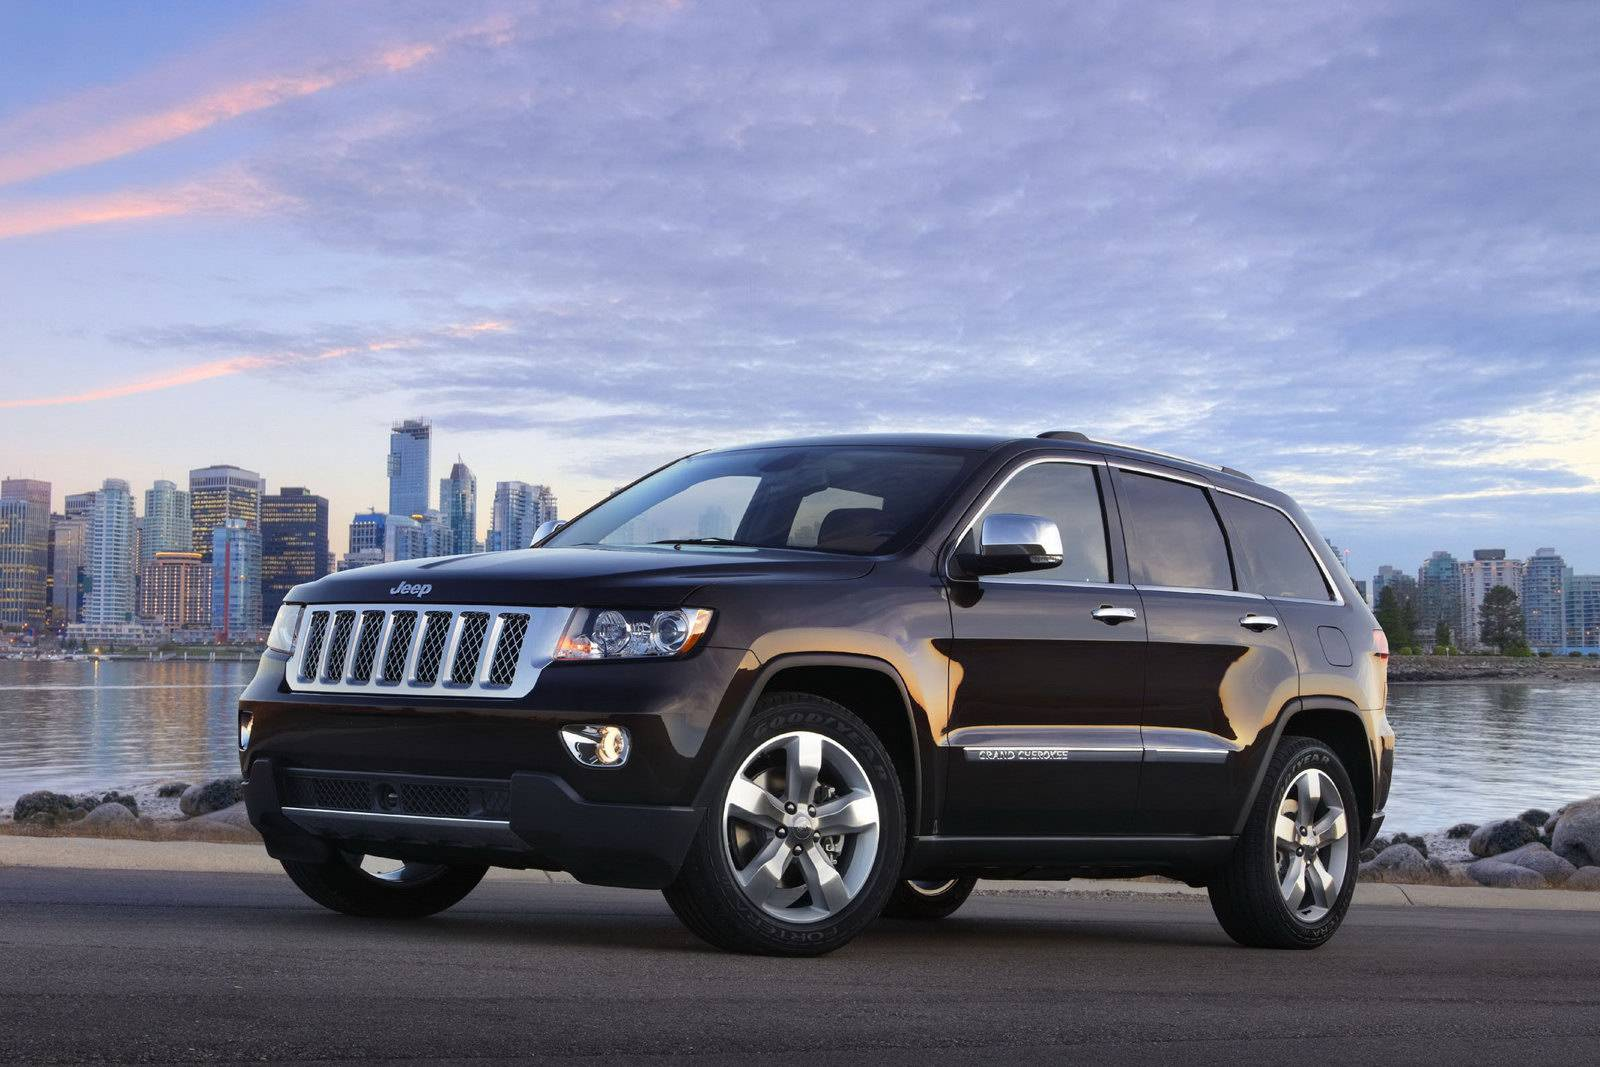 2011-jeep-grand-cherokee-overland-summit-and-liberty-jet-previewed-26531_1